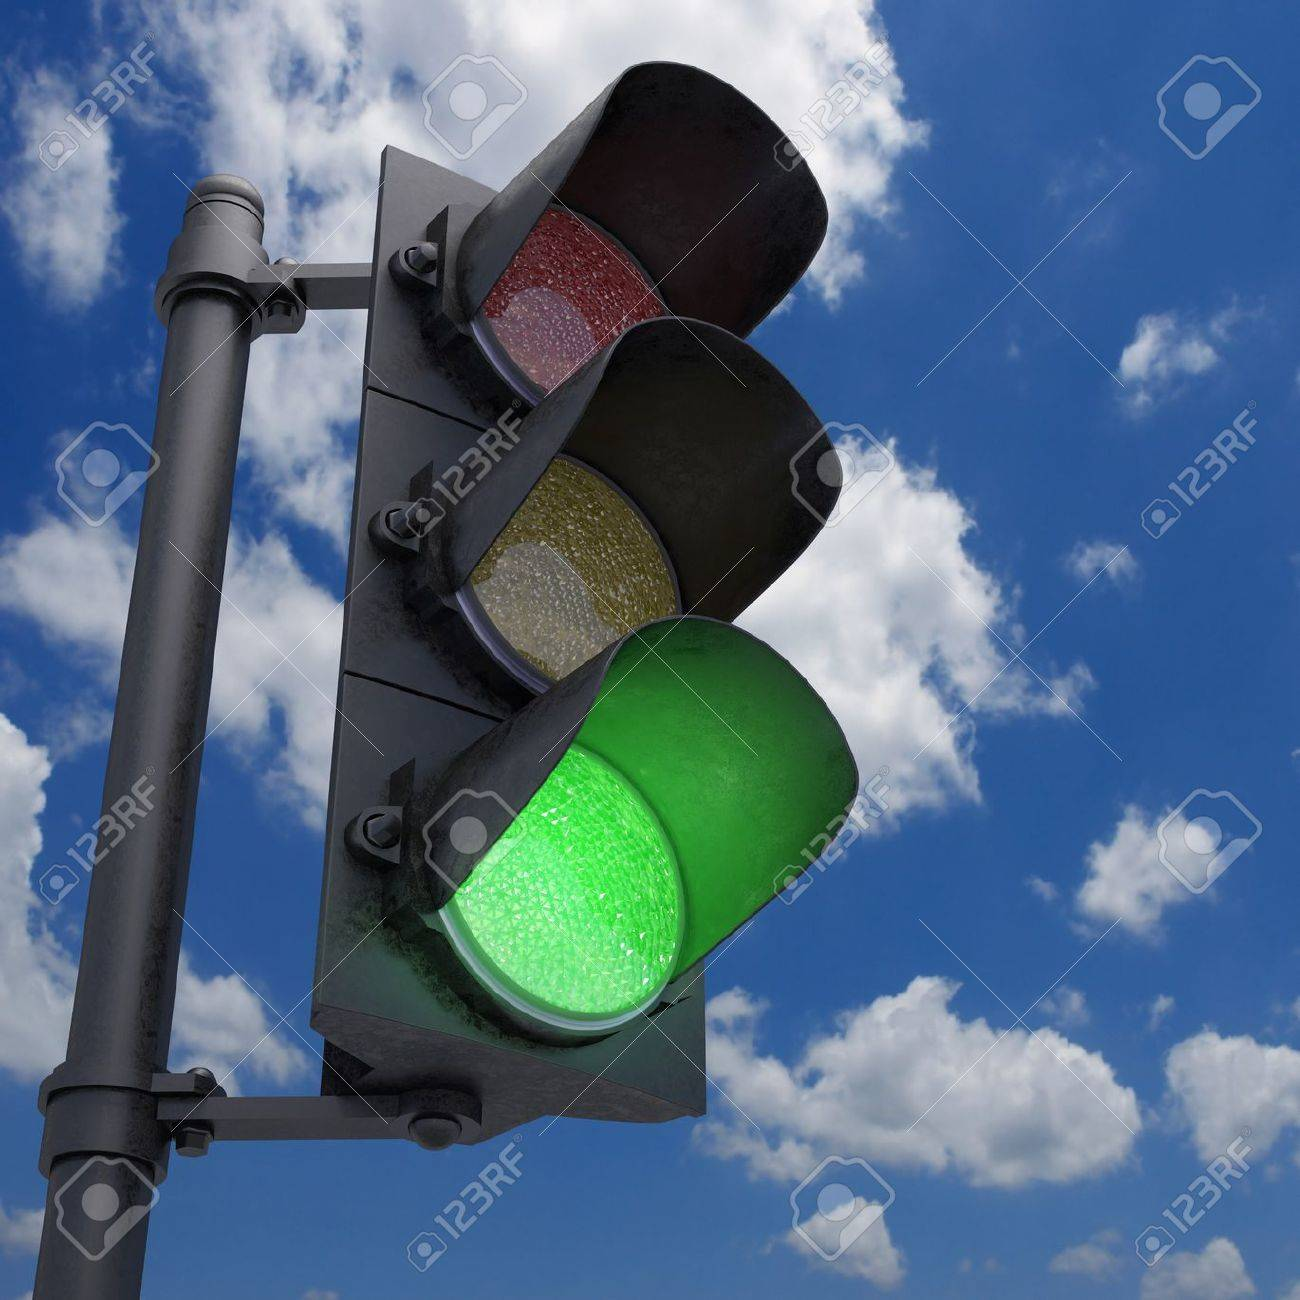 Traffic Light in a blue sky with only the green light on. - 17322884